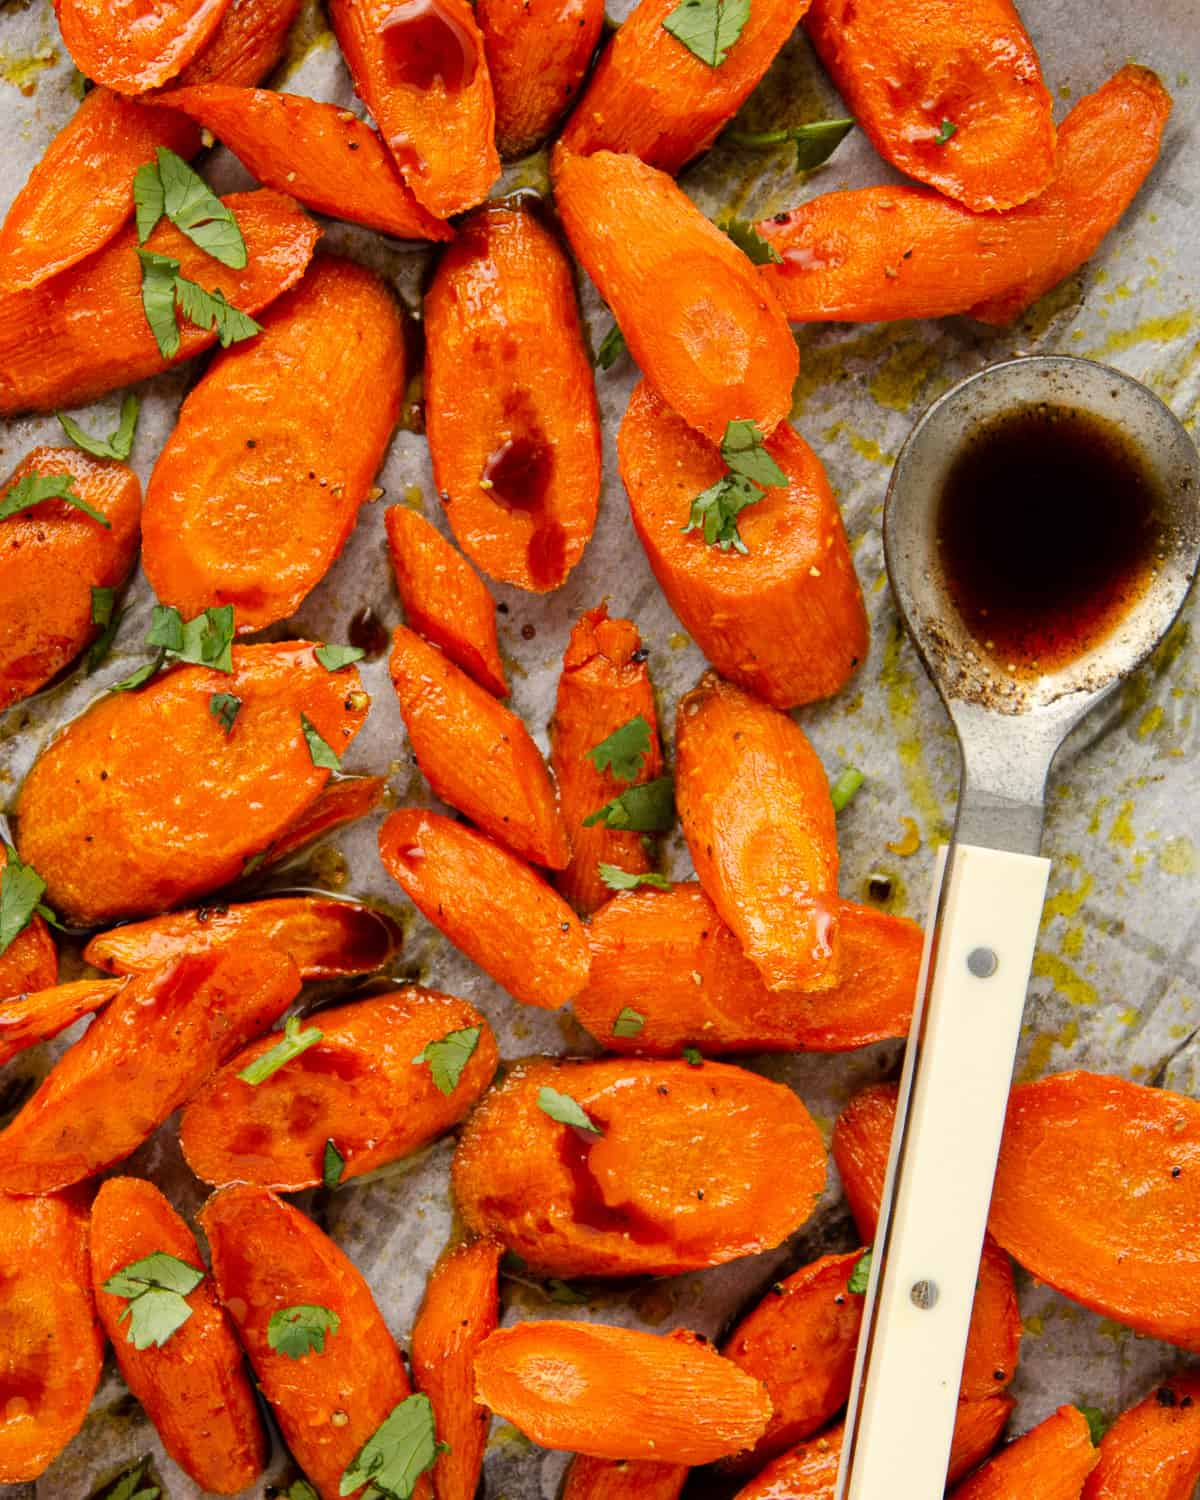 Roasted carrots on a baking tray with a spoon.